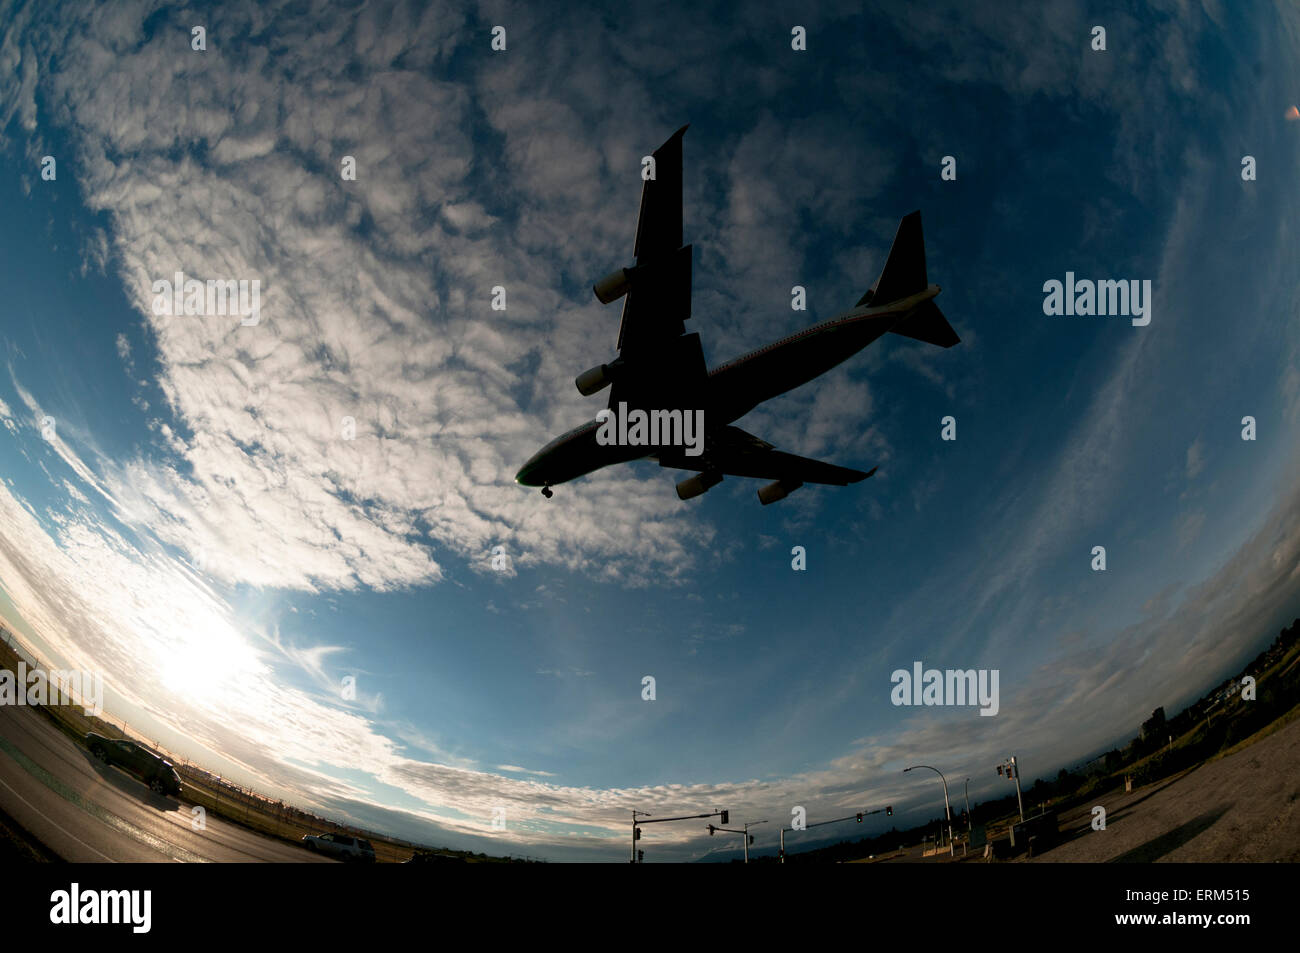 Large commercial jet on final approach - Stock Image